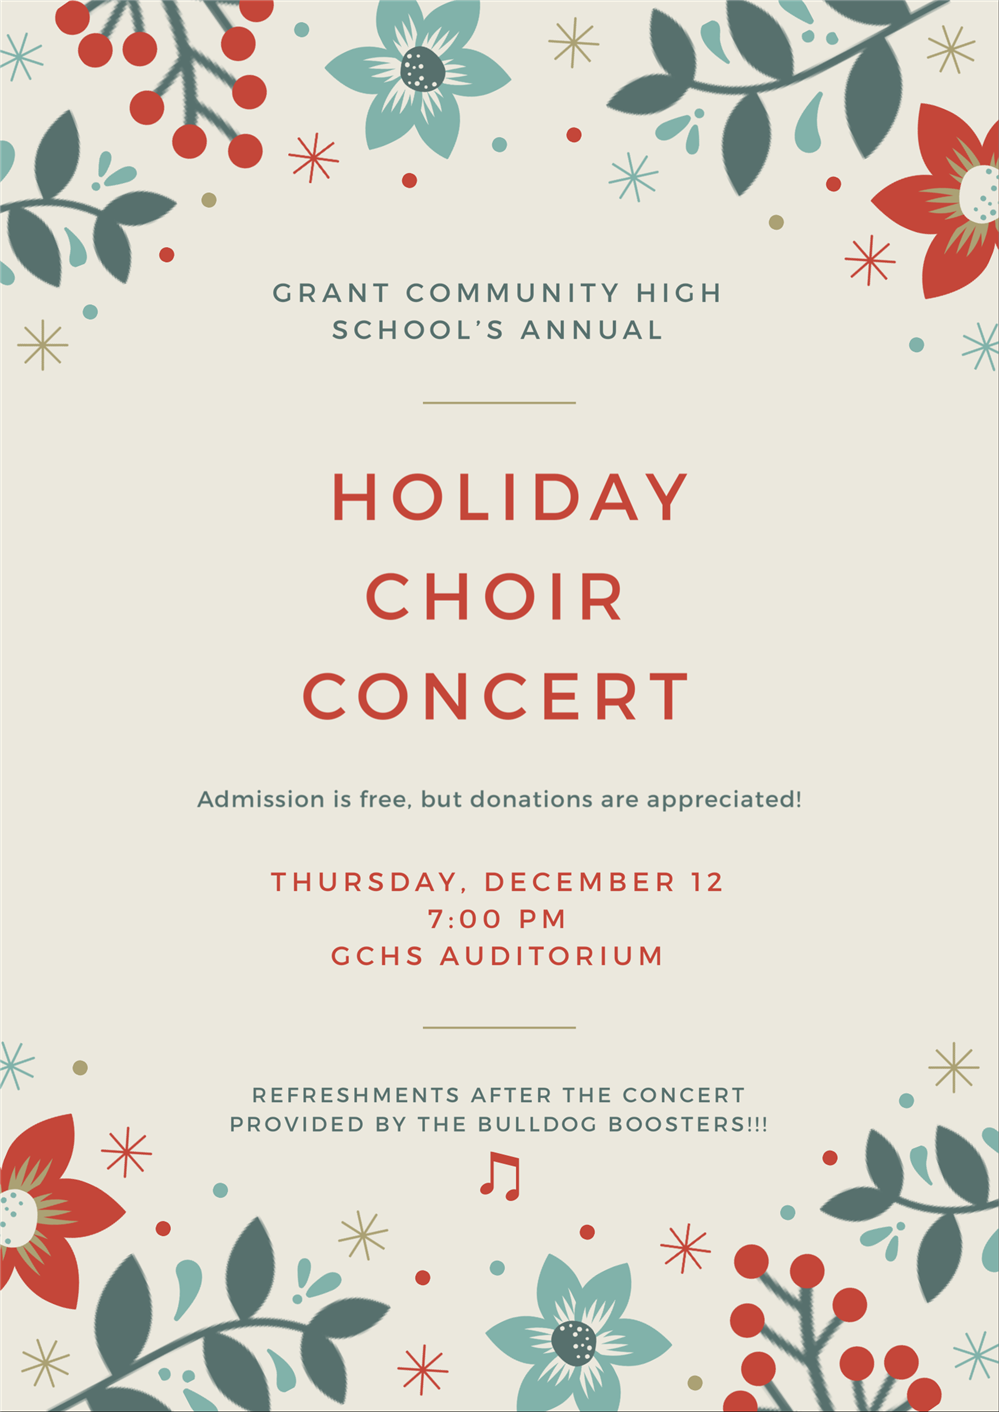 Holiday Choir Concert Flyer